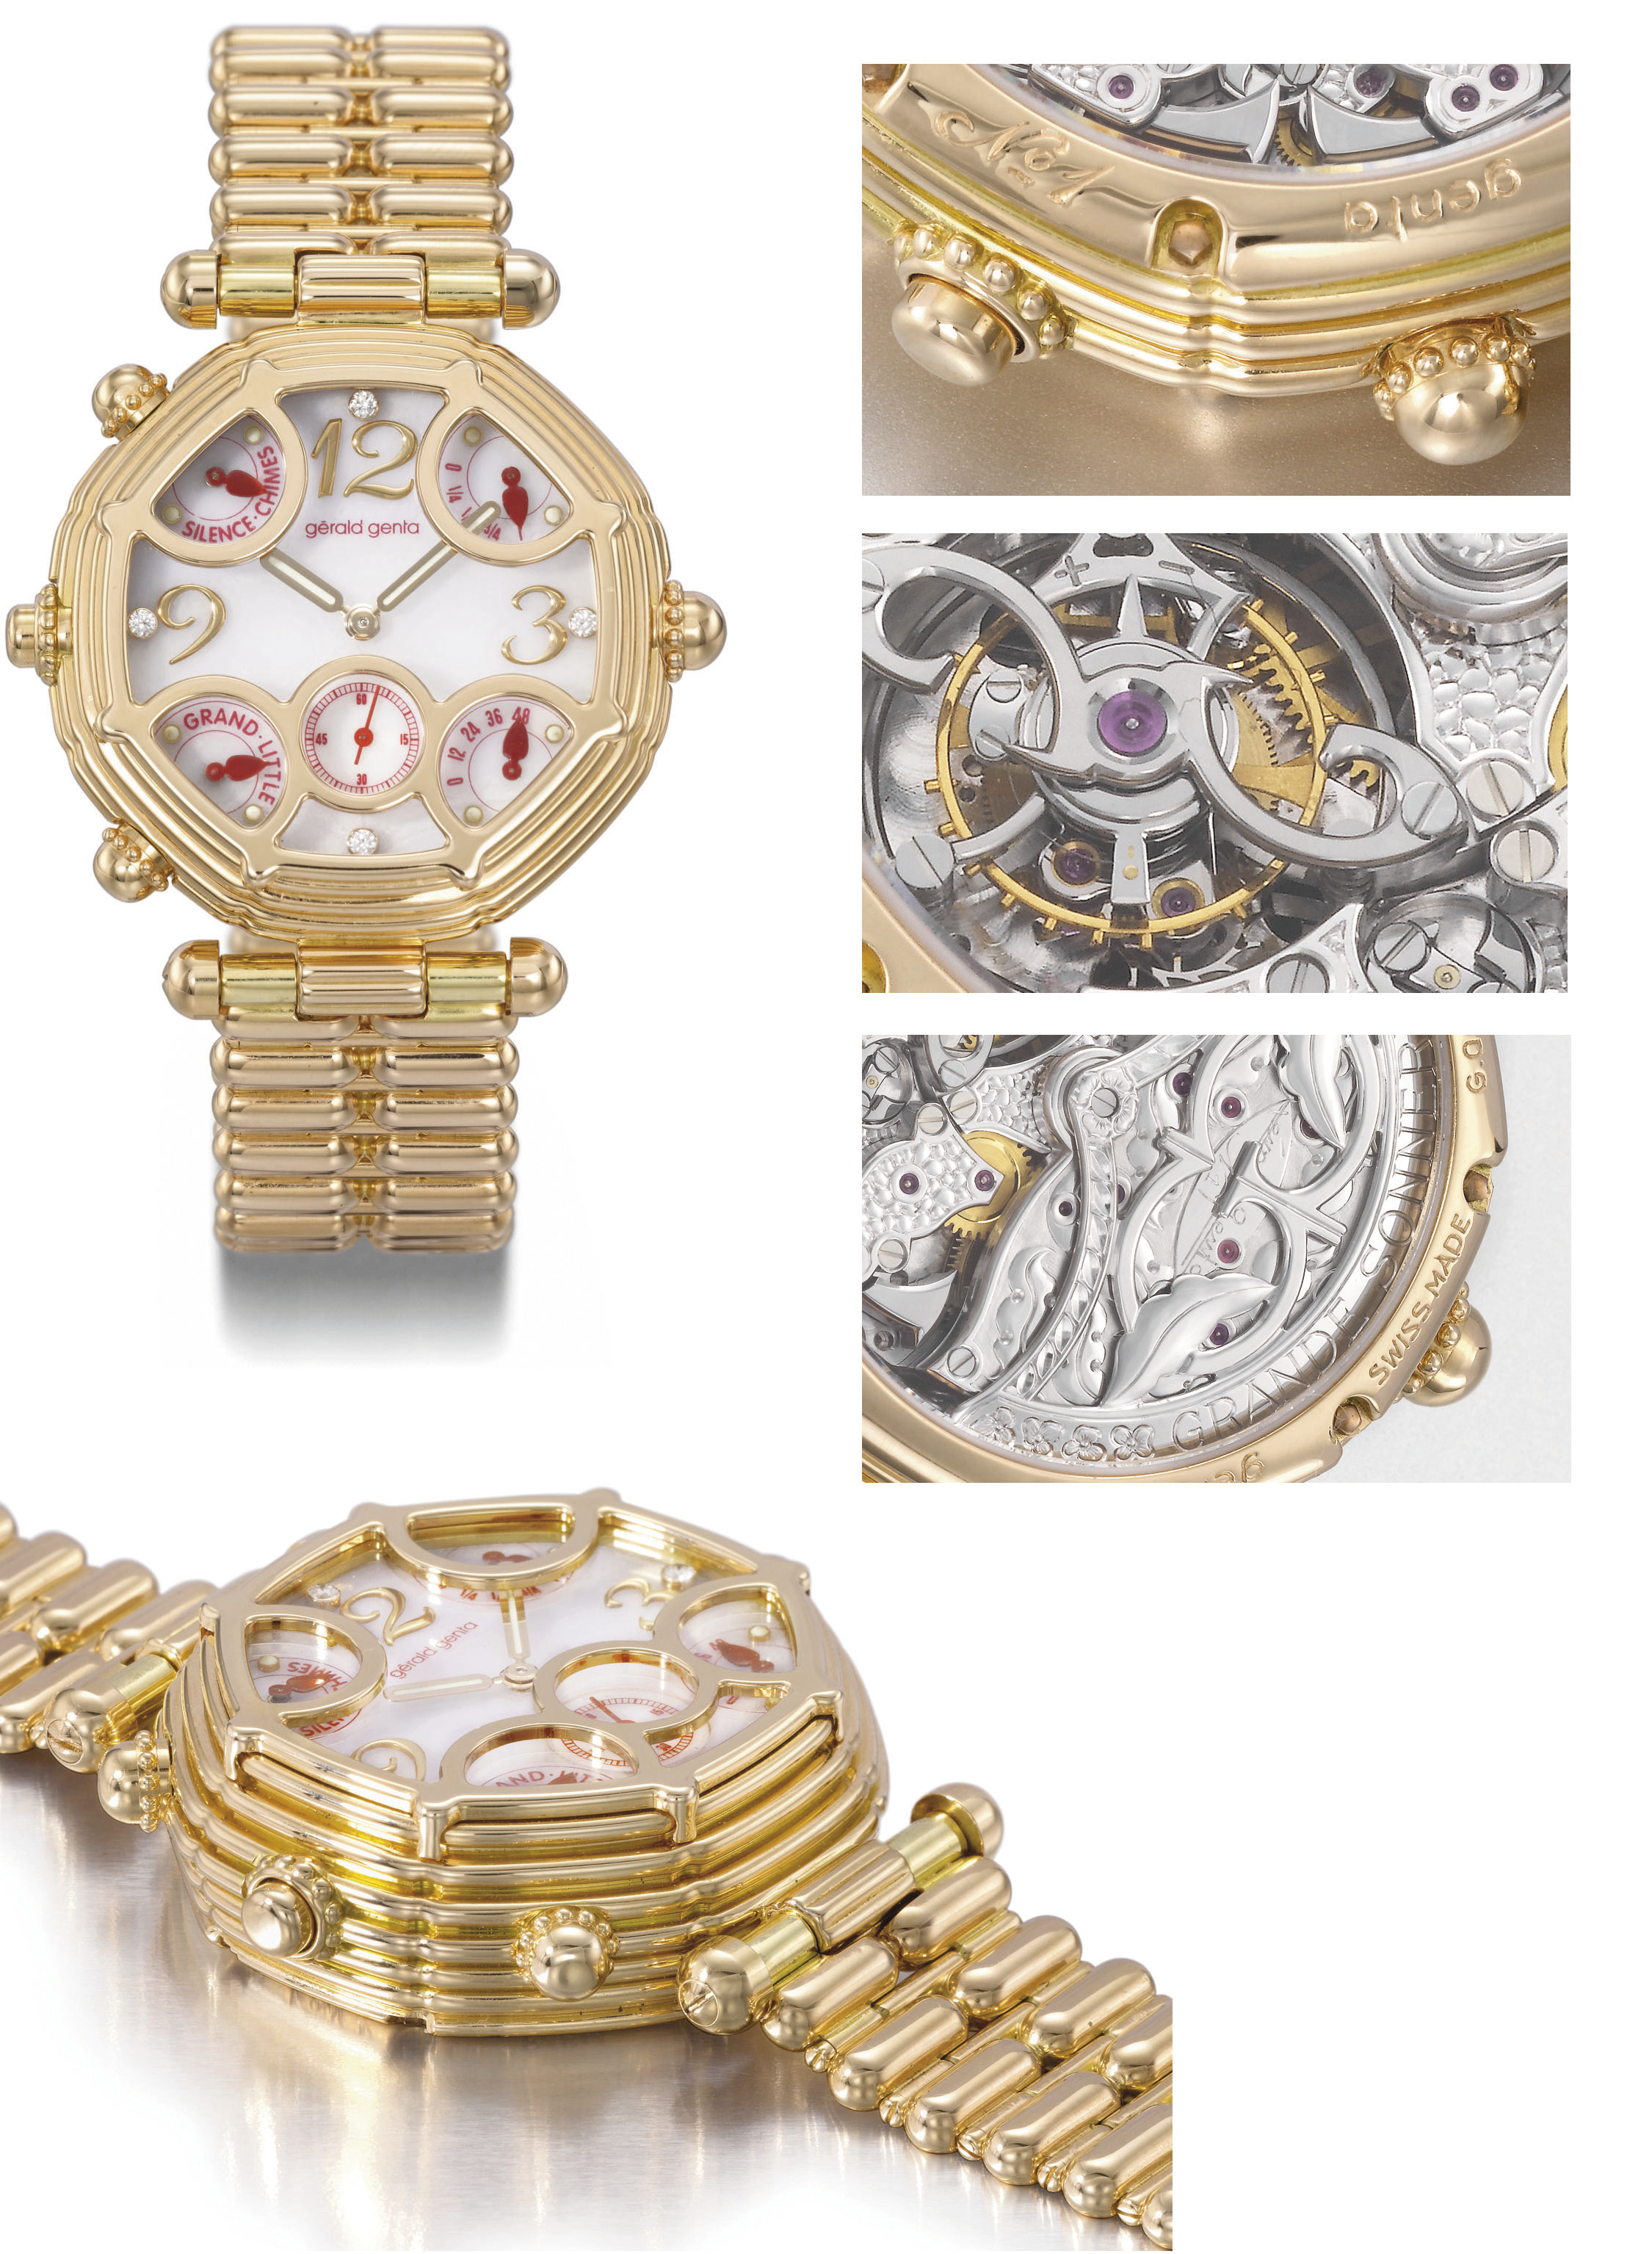 Gerald Genta. An extremely fine and unique 18K pink gold automatic two train minute repeating grande and petite sonnerie tourbillon wristwatch with power reserve, diamond-set mother-of-pearl dial, bracelet and Westminster Chime